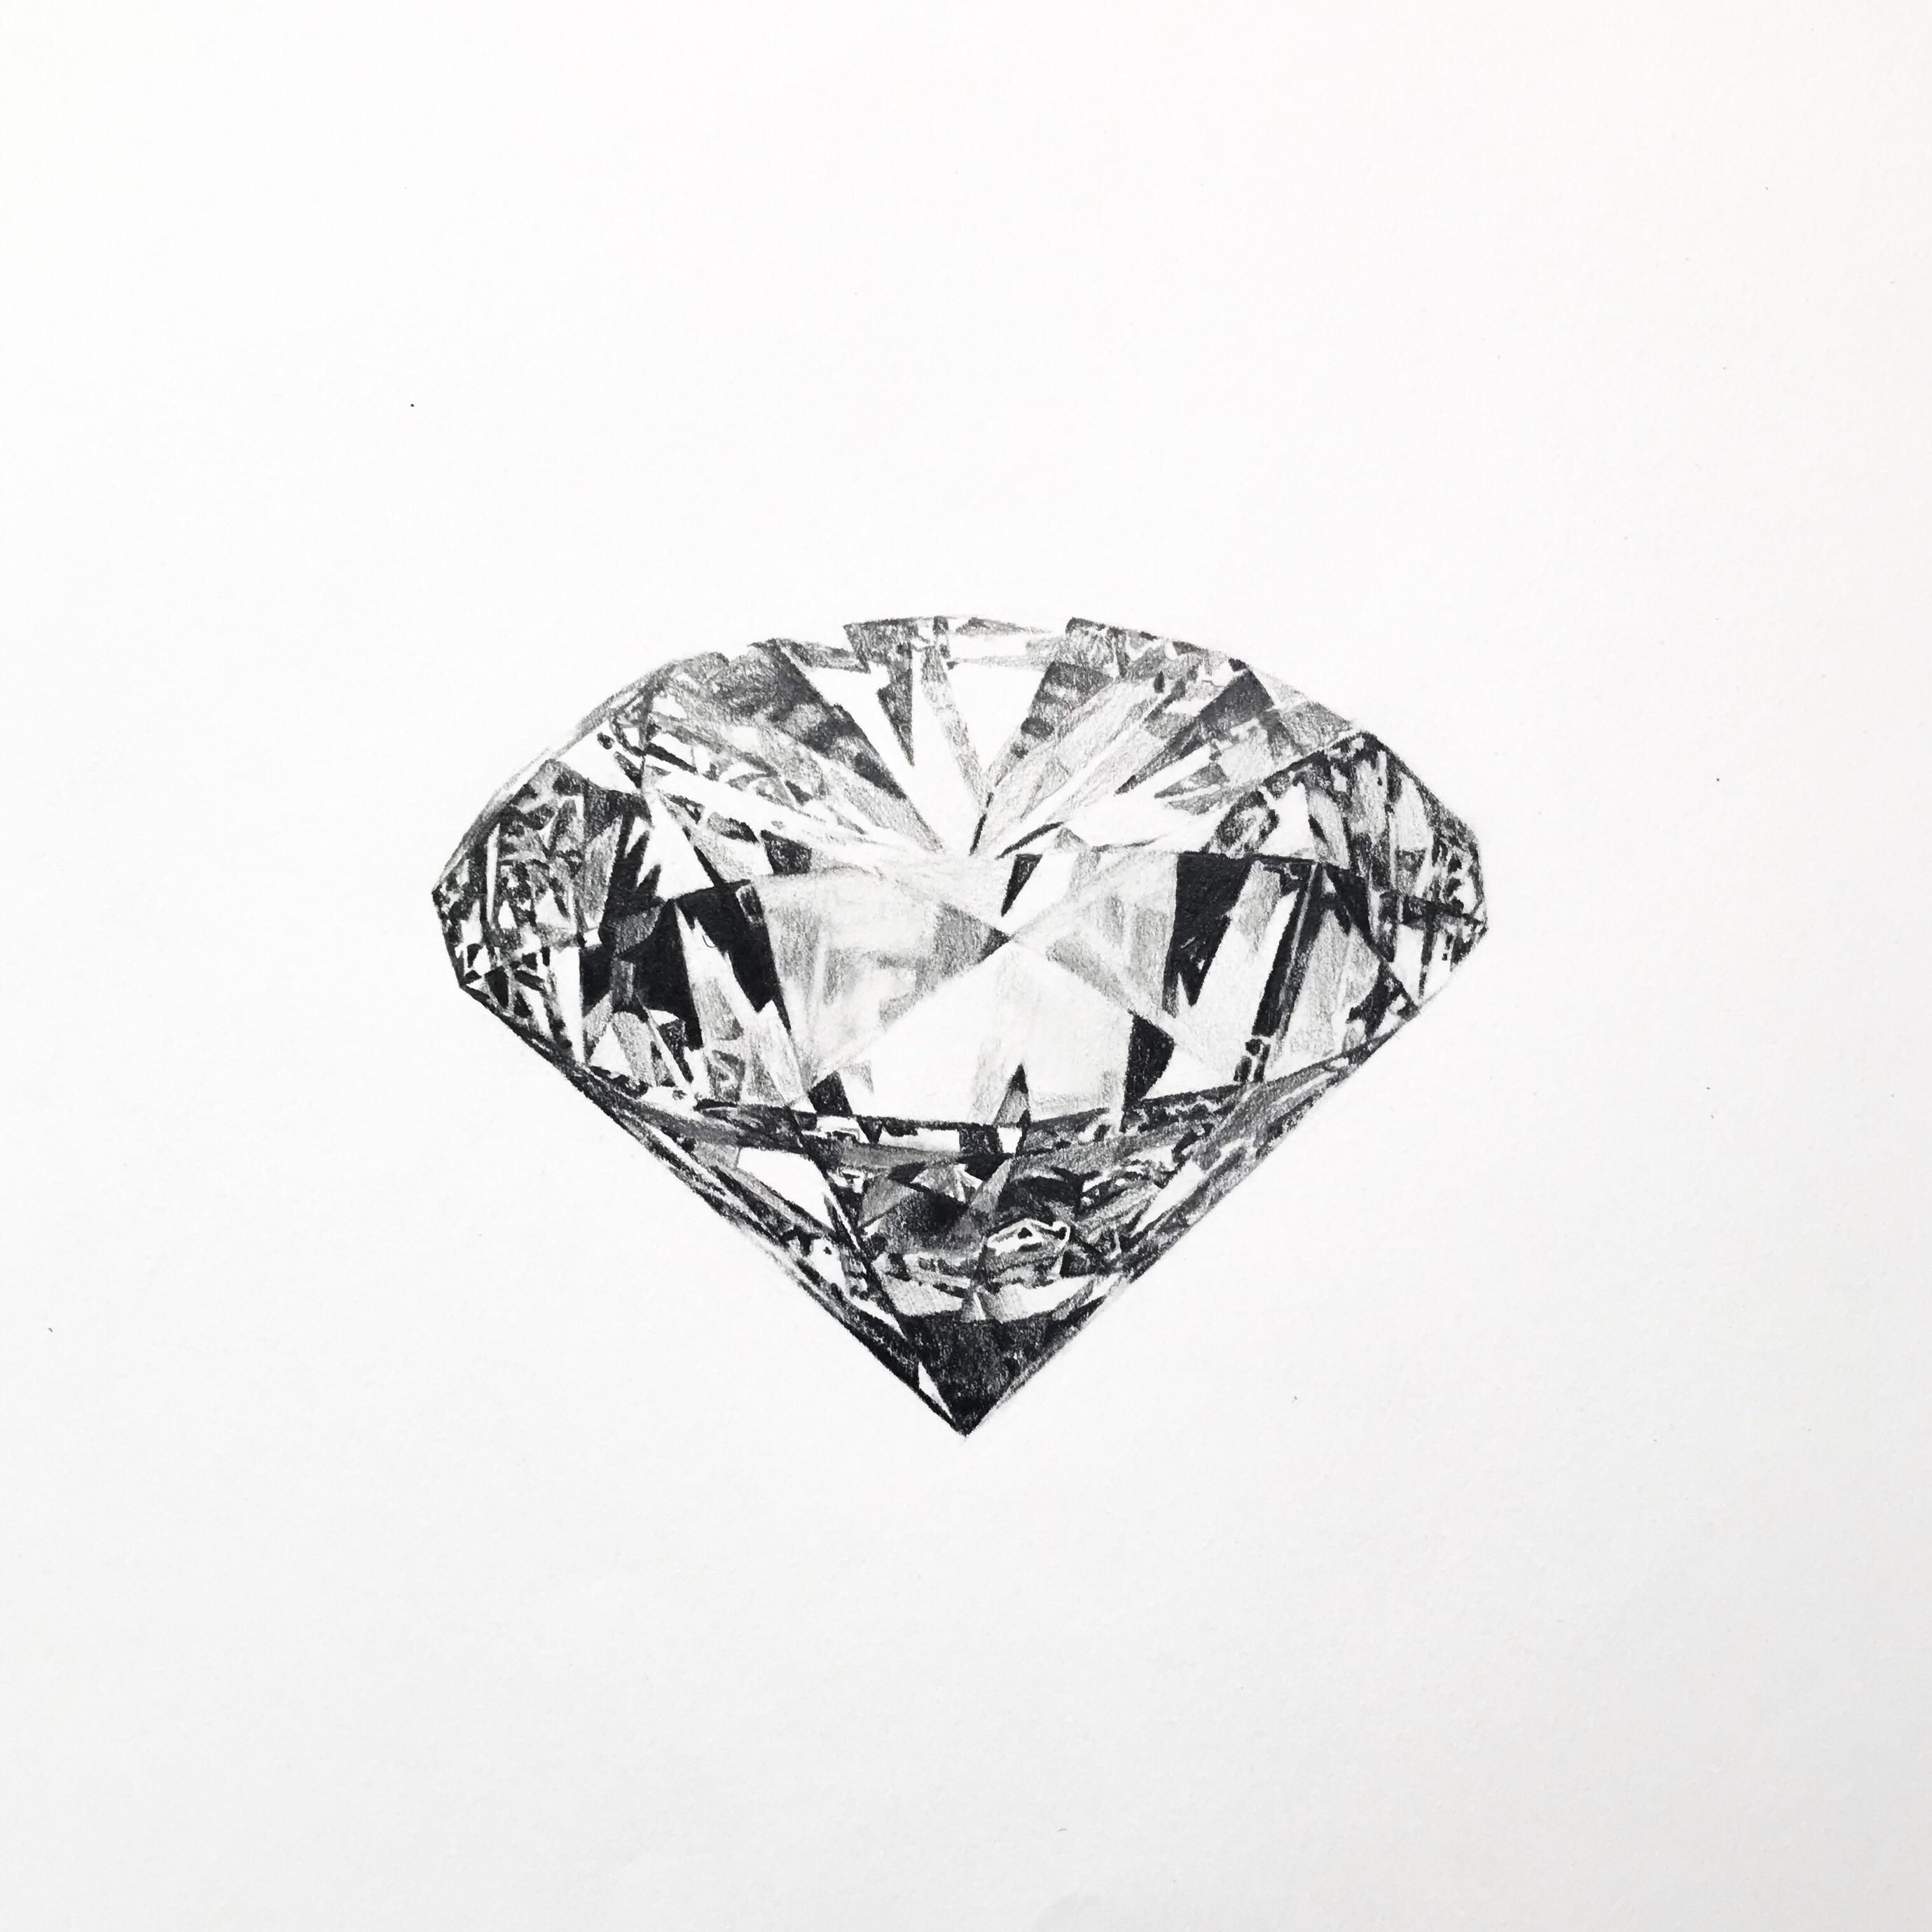 some paper graphite h vinyl dimensions variable diamond